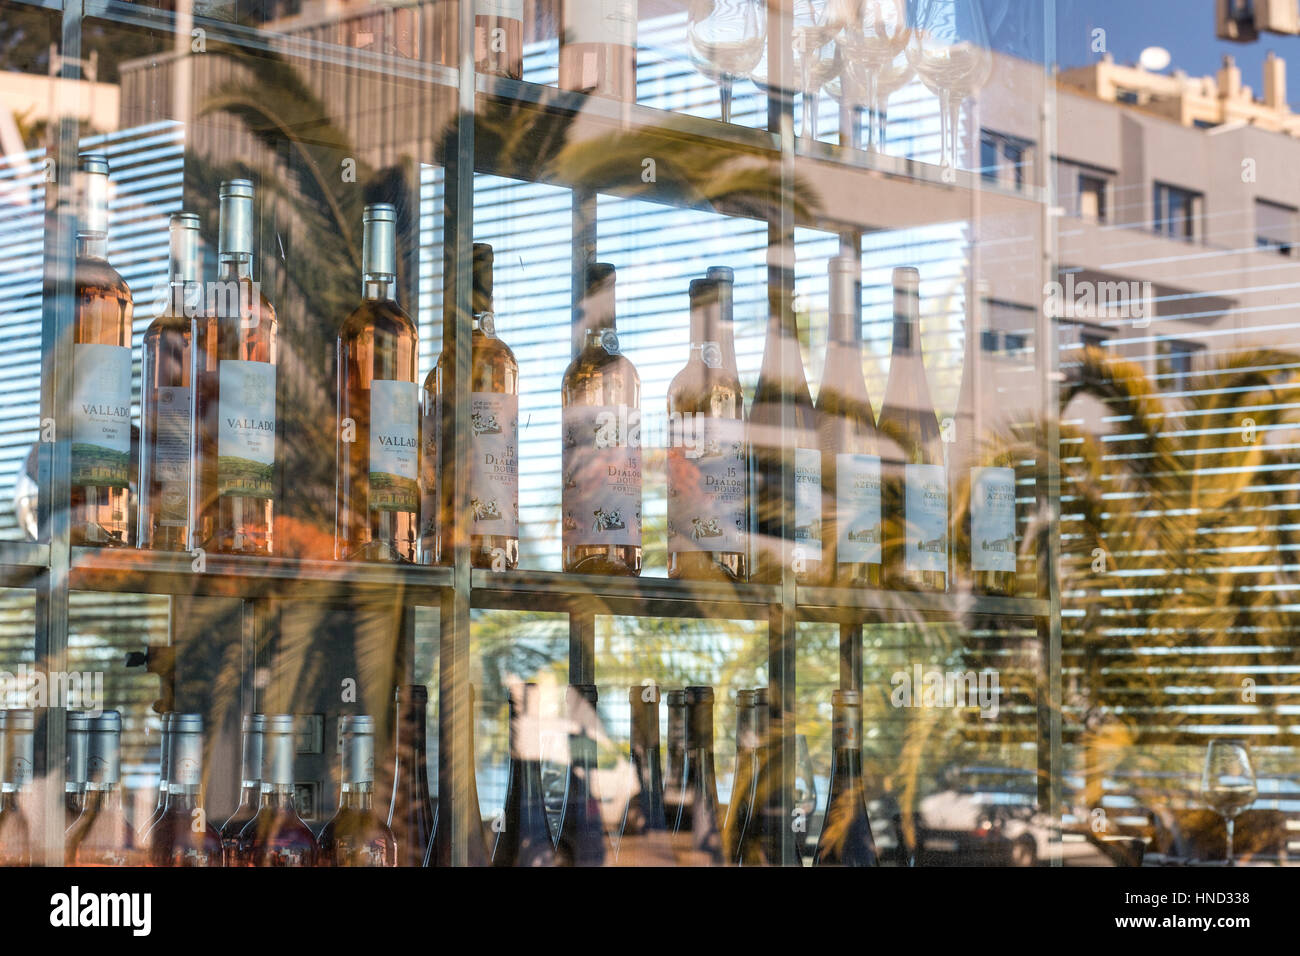 Porto architecture reflectiones in a window pane, colorful wine bottles blurred by the glass and sun rays play. - Stock Image